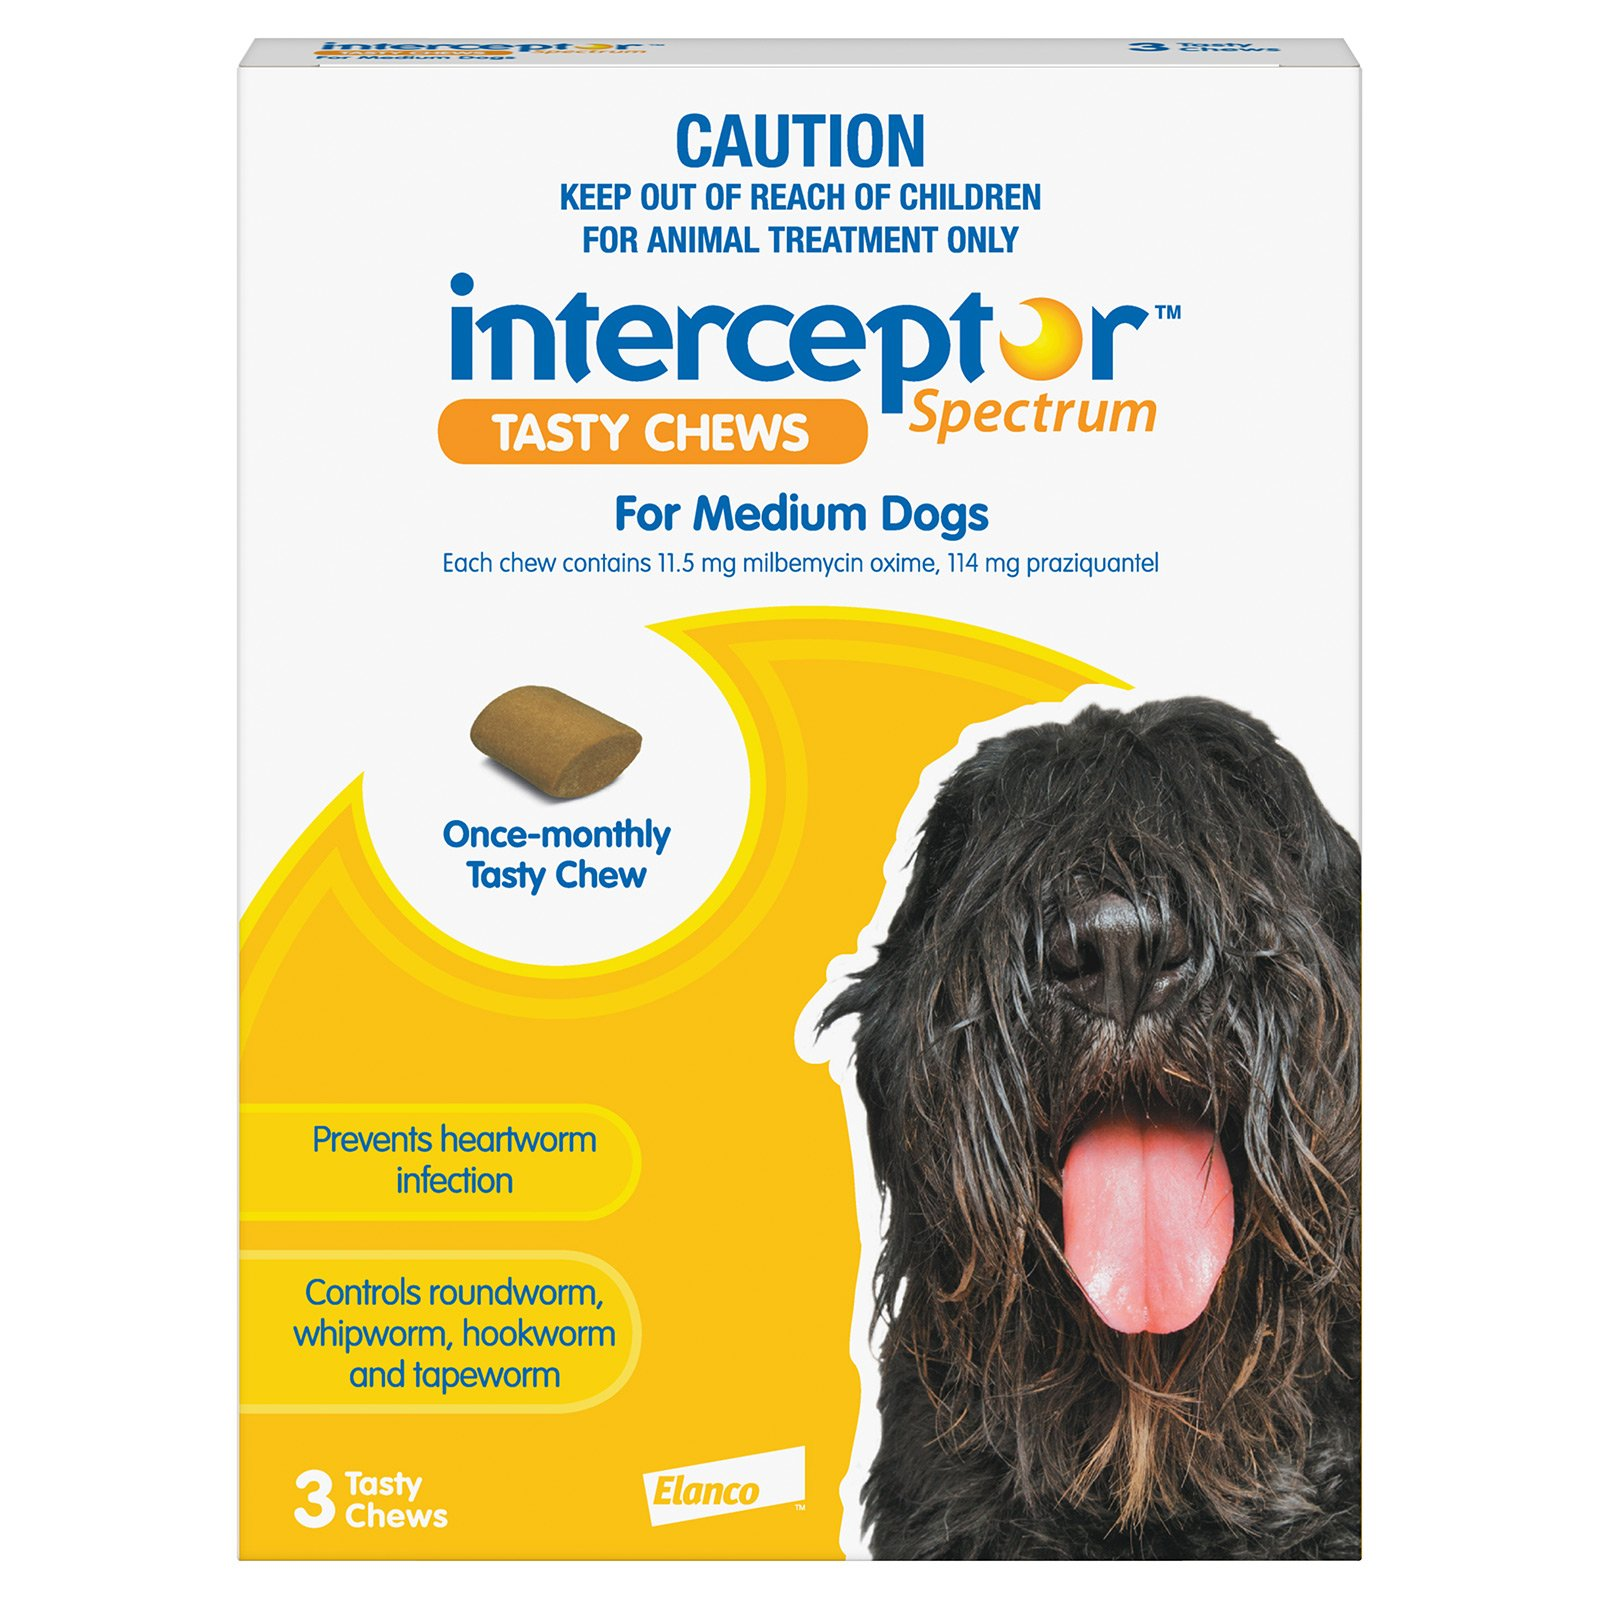 interceptor-spectrum-tasty-chews-for-medium-dogs-11-to-22kg-yellow.jpg